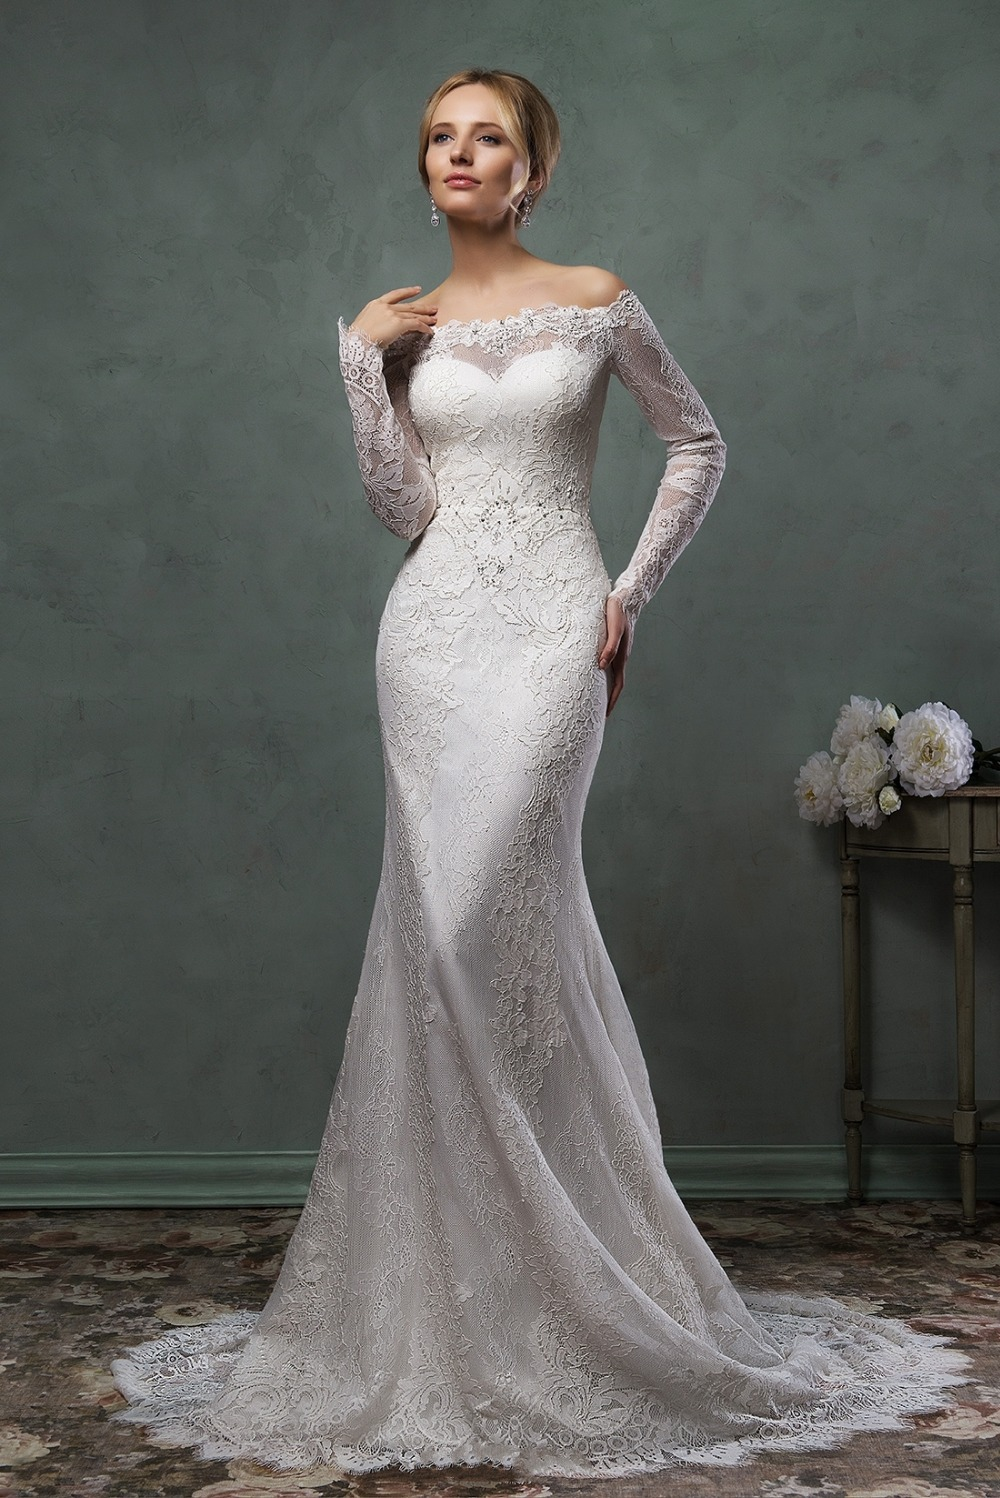 Mermaid long sleeve boat neck wedding lace dresses 2015 for Long sleeve lace wedding dresses